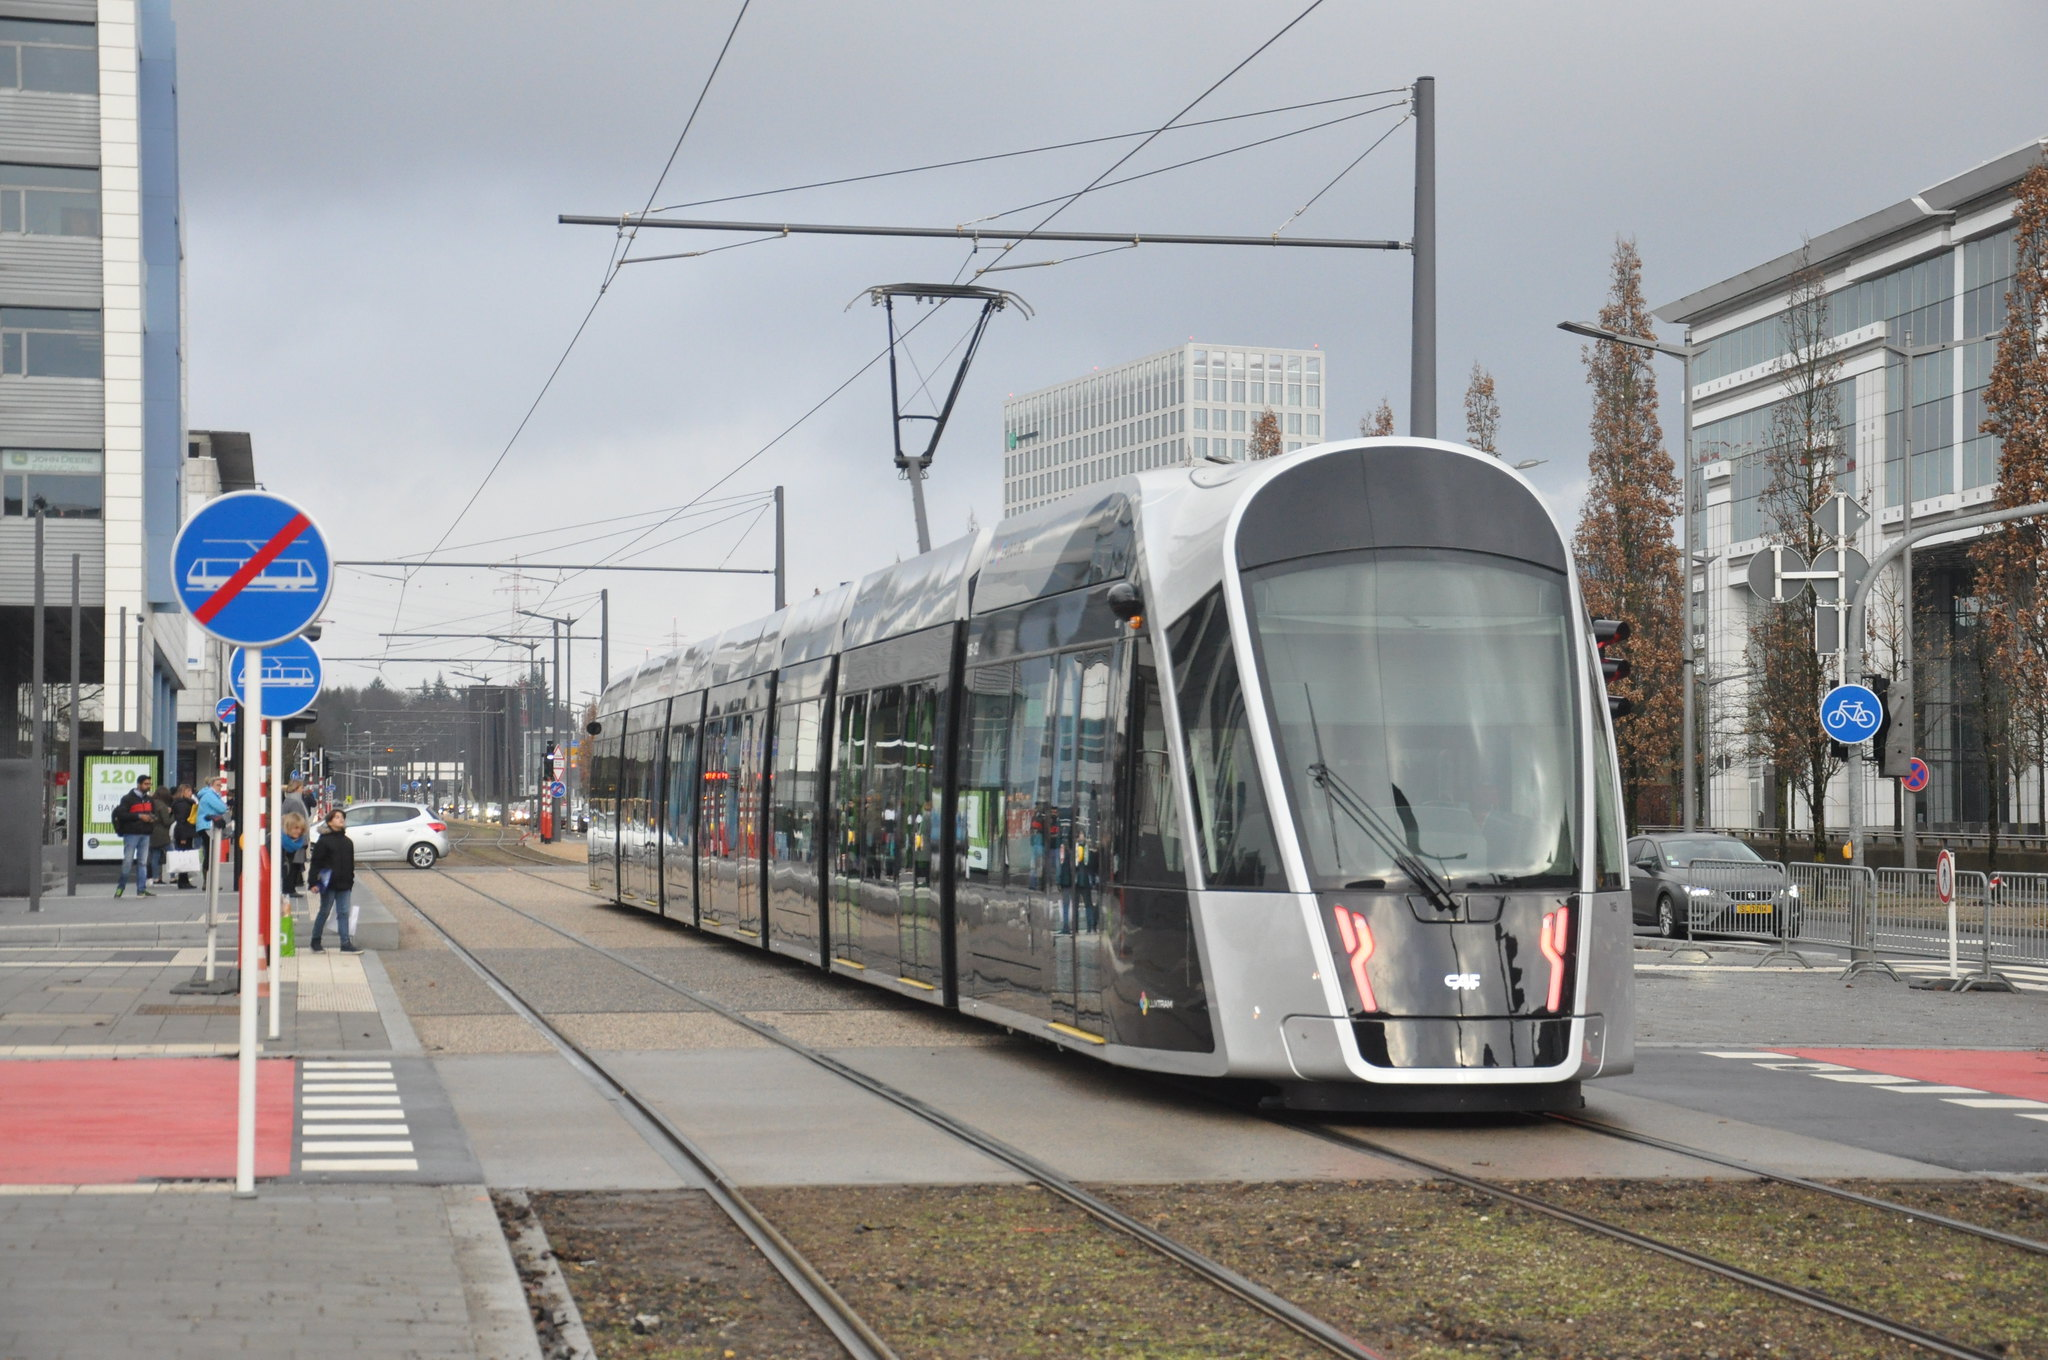 a modern tram moves through a city